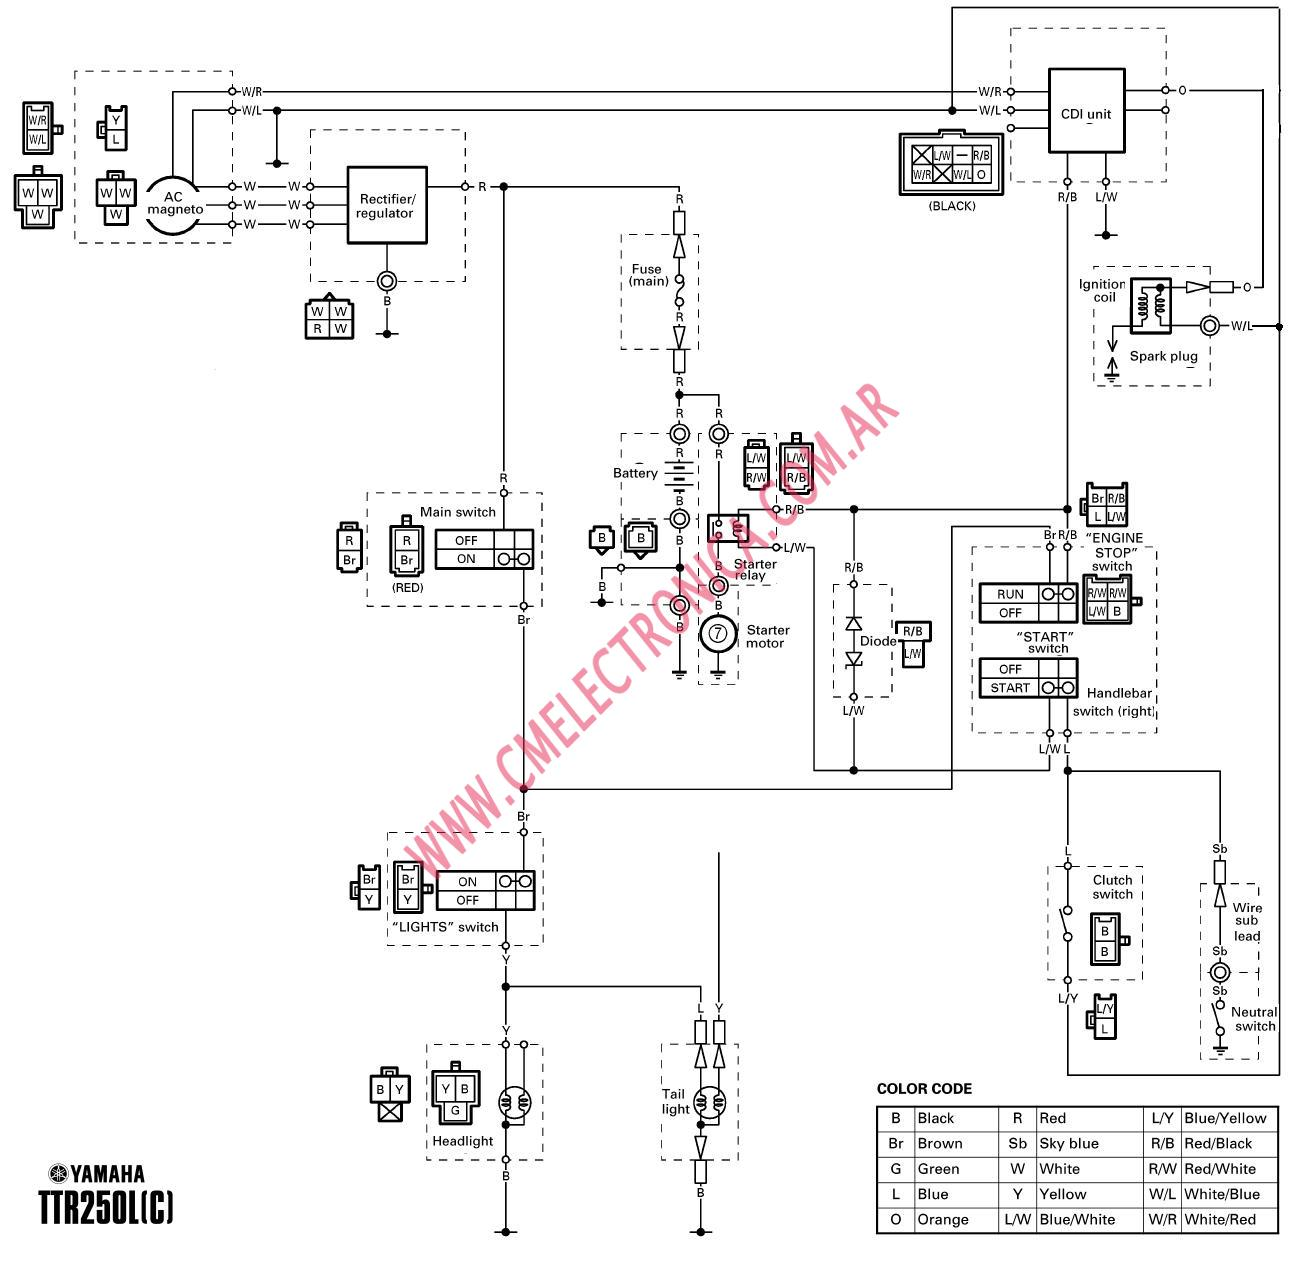 yamaha ttr250 ttr 250 wiring diagram ttr 250 wiring diagram \u2022 indy500 co  at soozxer.org